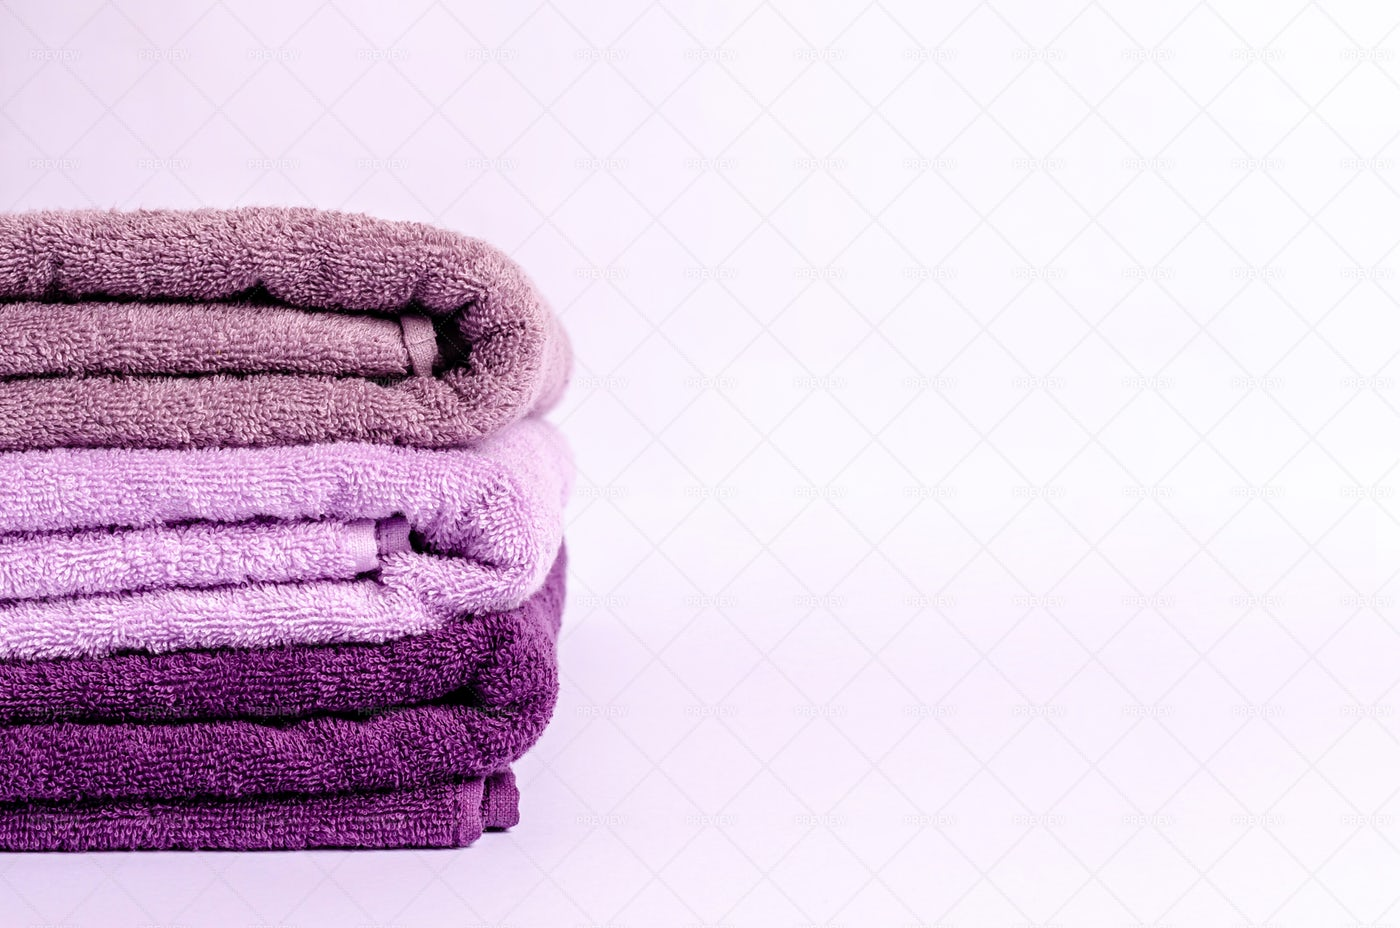 Stack Of Bath Towels: Stock Photos